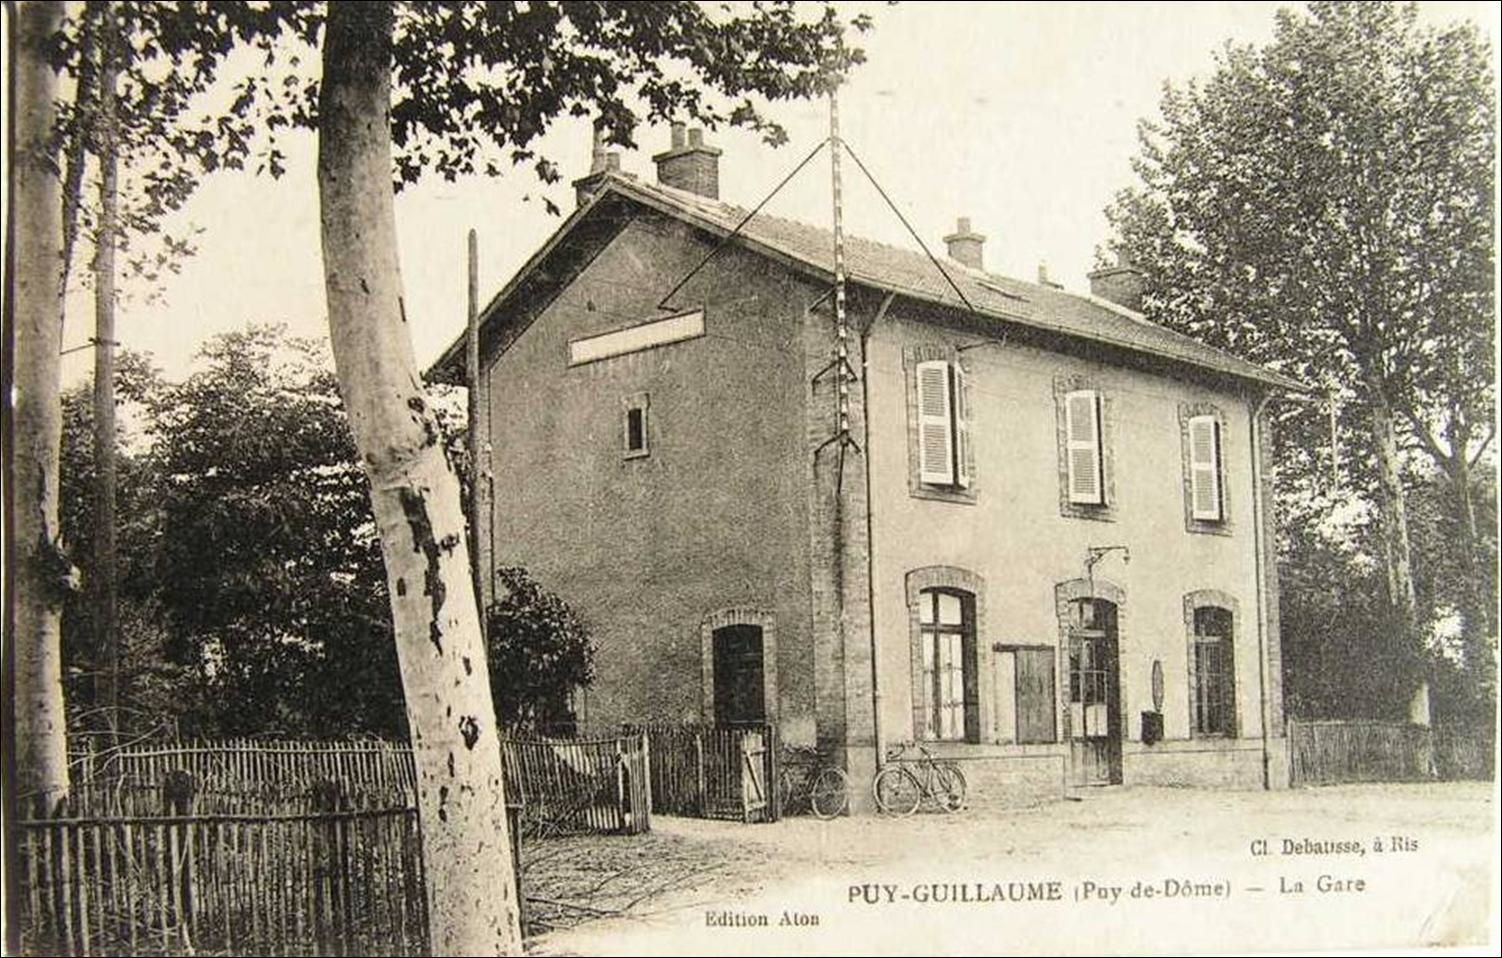 Puy Guillaume 1900